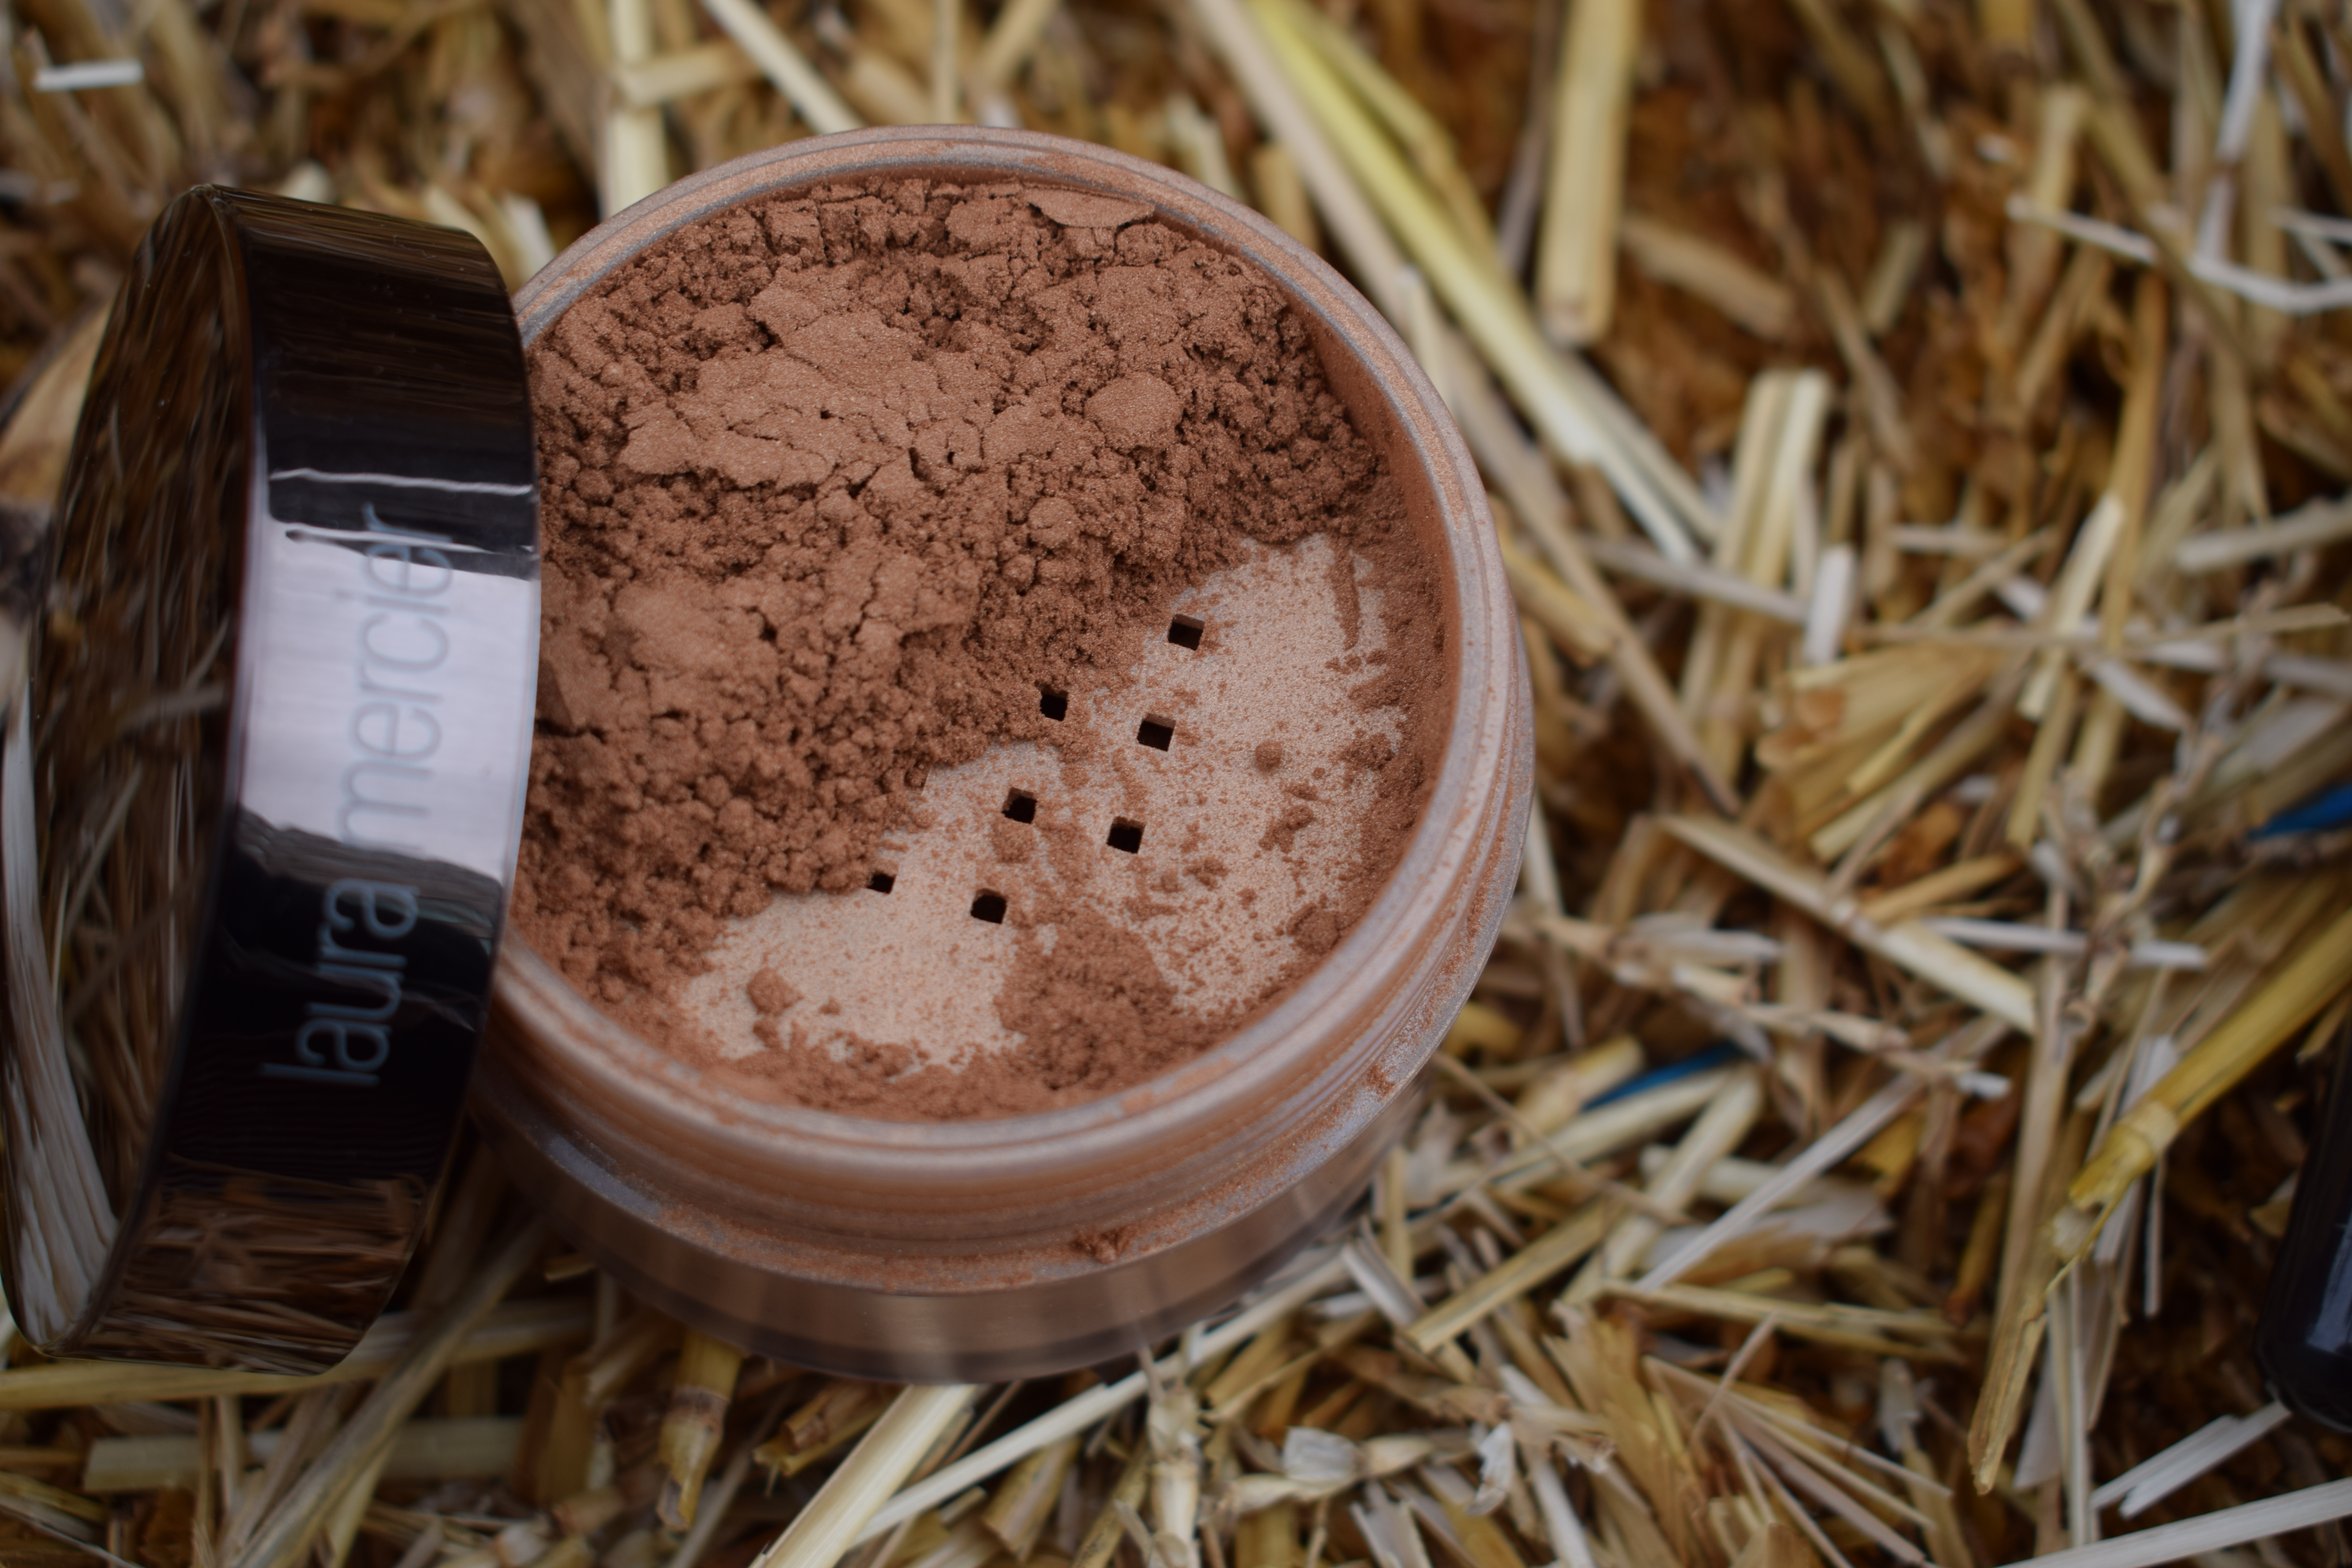 Laura Mercier Translucent Loose Setting Powder Glow VoxBox Review